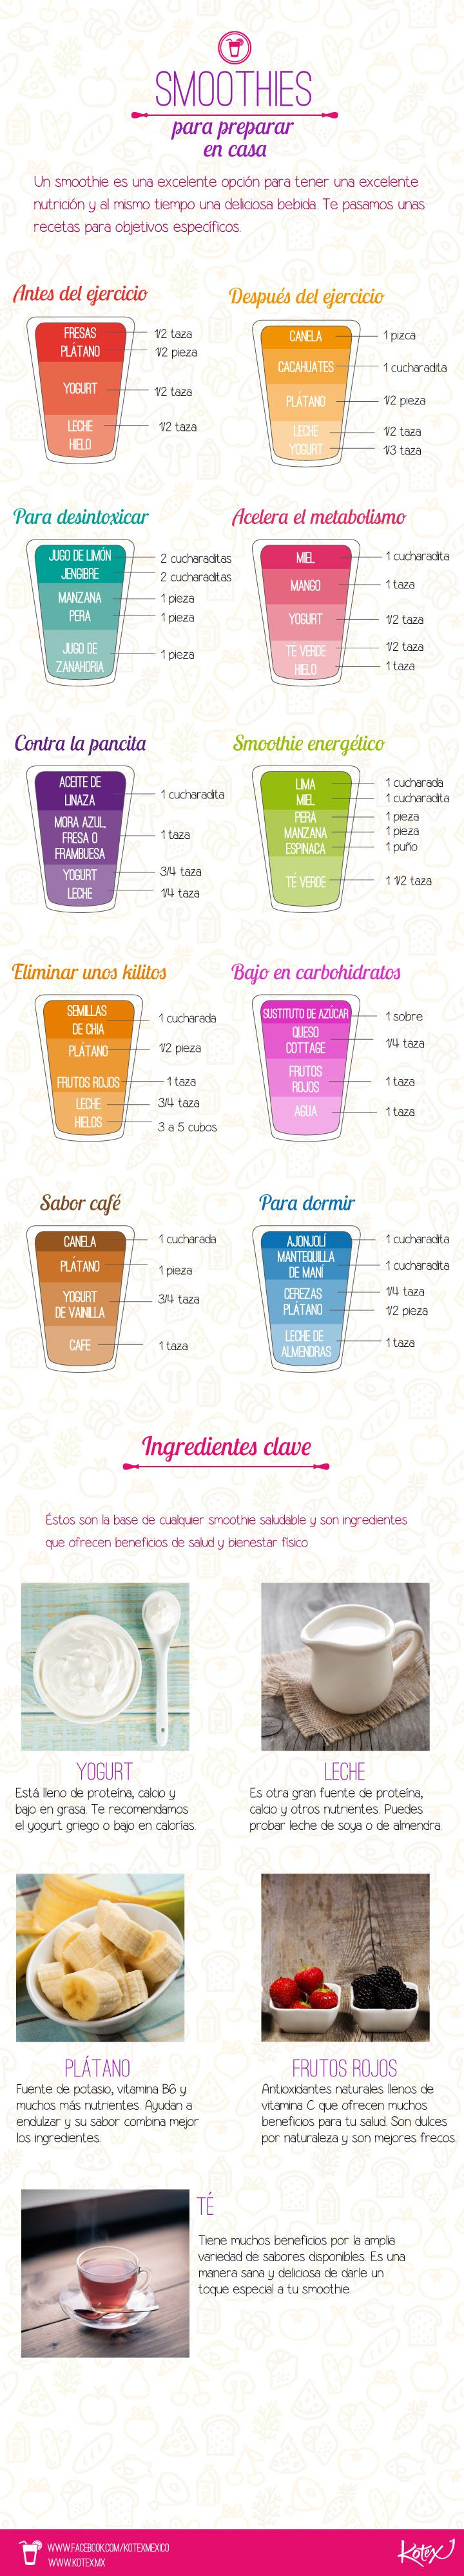 Smoothies caseros!